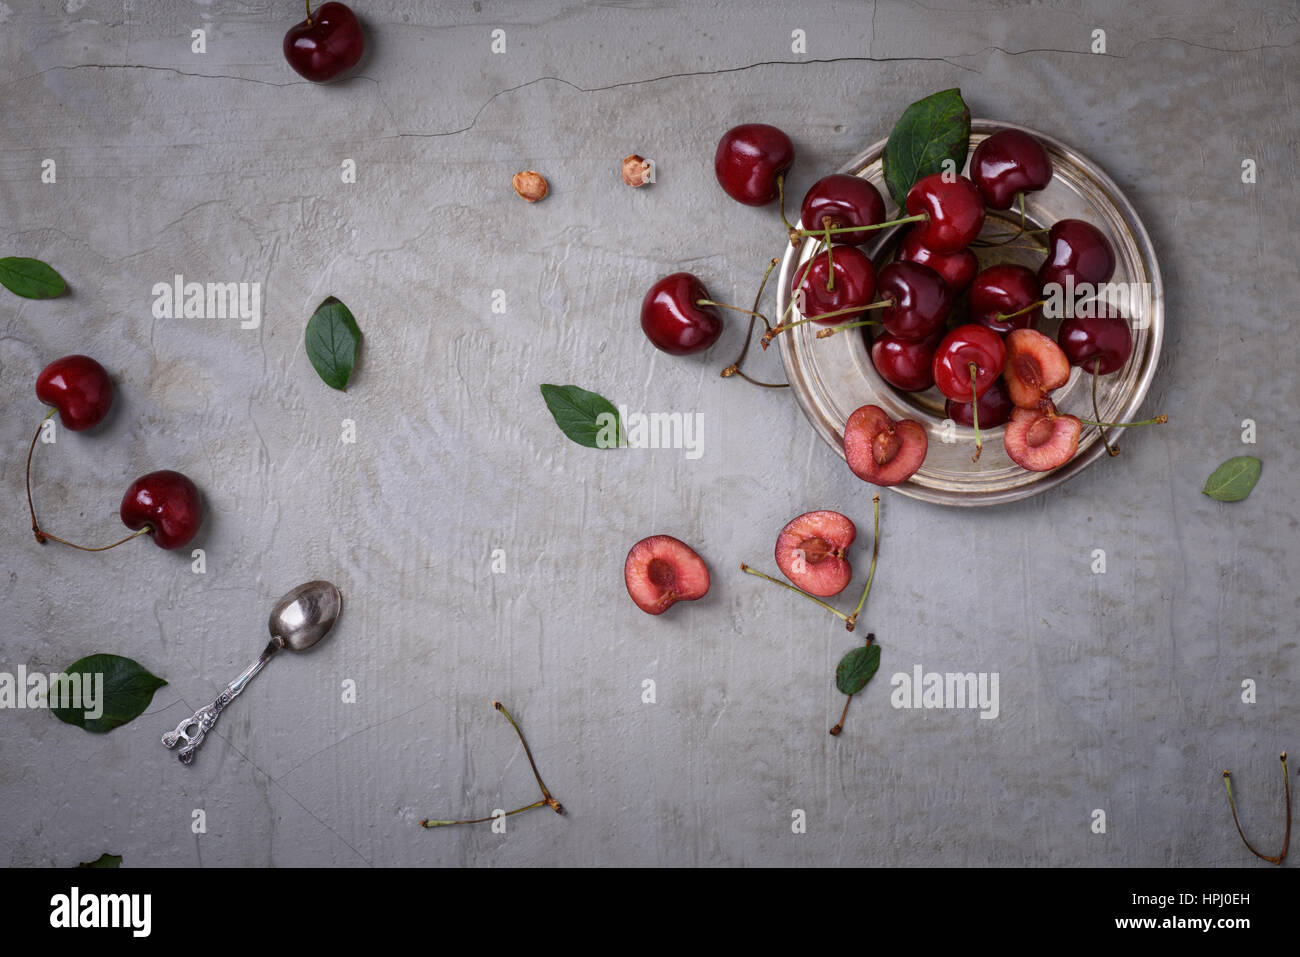 Cherry on a plate over grey rustic background, copy space, overhead view. Fresh berries, fruit. - Stock Image